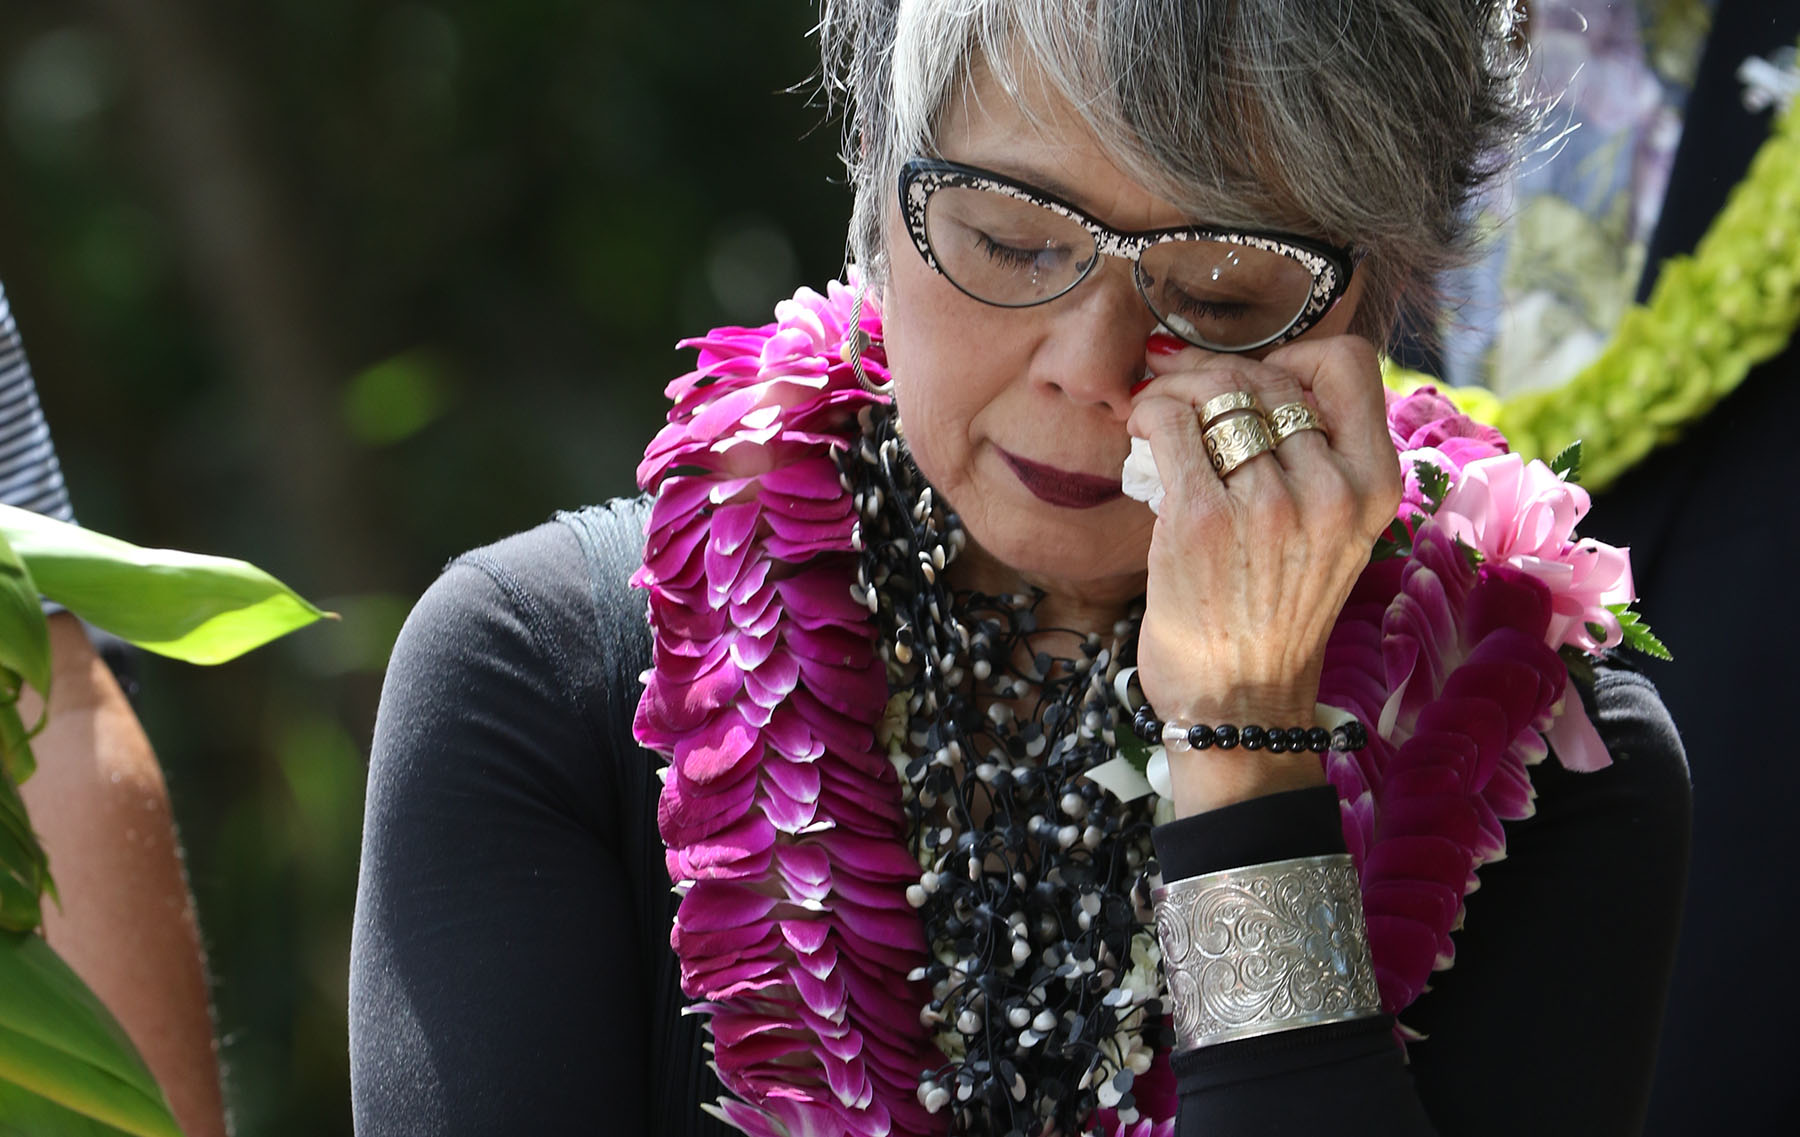 <p>In late March, a ceremony was held to dedicate the Honouliuli National Monument at the site where 400 civilians were incarcerated alongside prisoners of war during World II. The civilians were some of the 120,000 Japanese-Americans sent to internment camps nationwide. Carole Hayashino, executive director of the Japanese Cultural Center of Hawaii, listens to U.S. Secretary of the Interior Sally Jewell speak.</p> <p> </p>